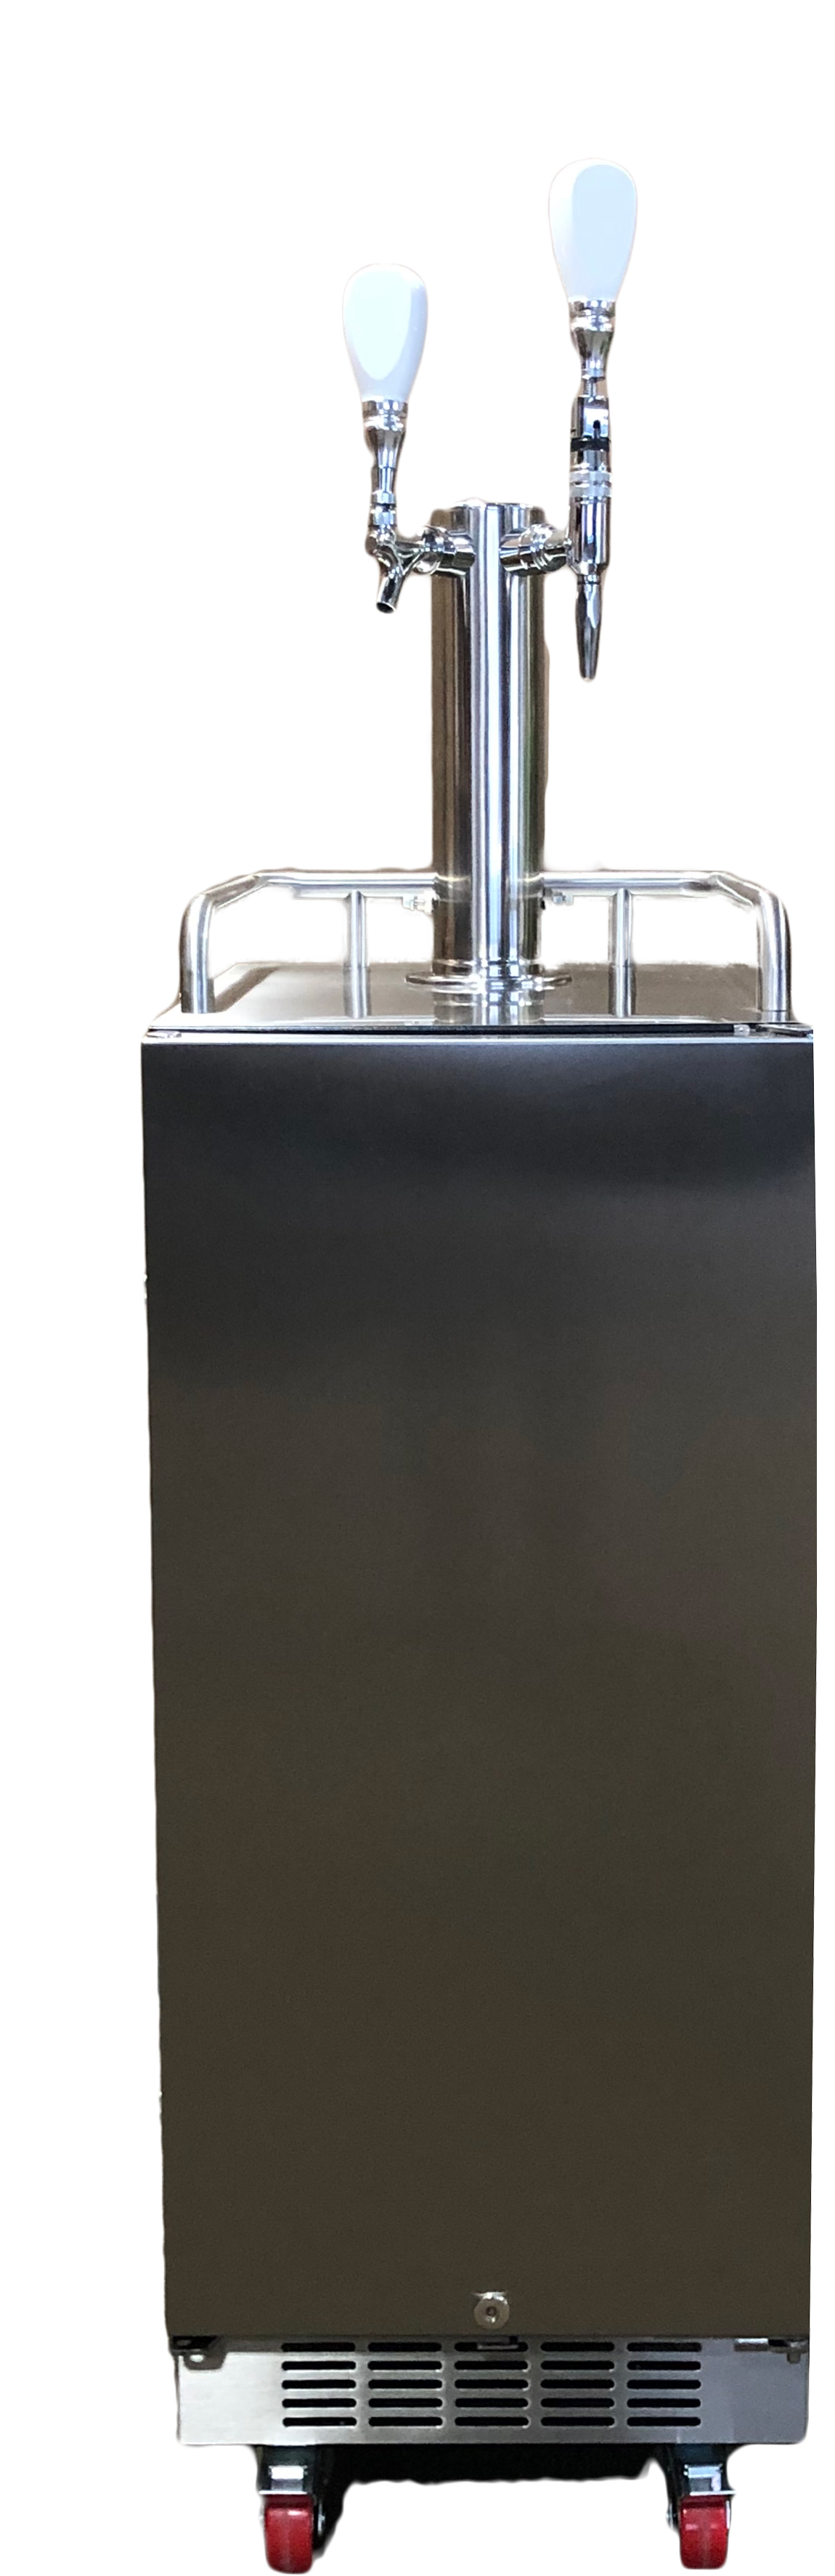 Nitro Cold Brew + Still Cold BrewFROM JUST ONE KEG - If you're looking to empower small spaces, the Nitro Tower 1+1 also allows you to pour both still and nitro beverages from the same keg, eliminating the need to fuss with a countertop system.